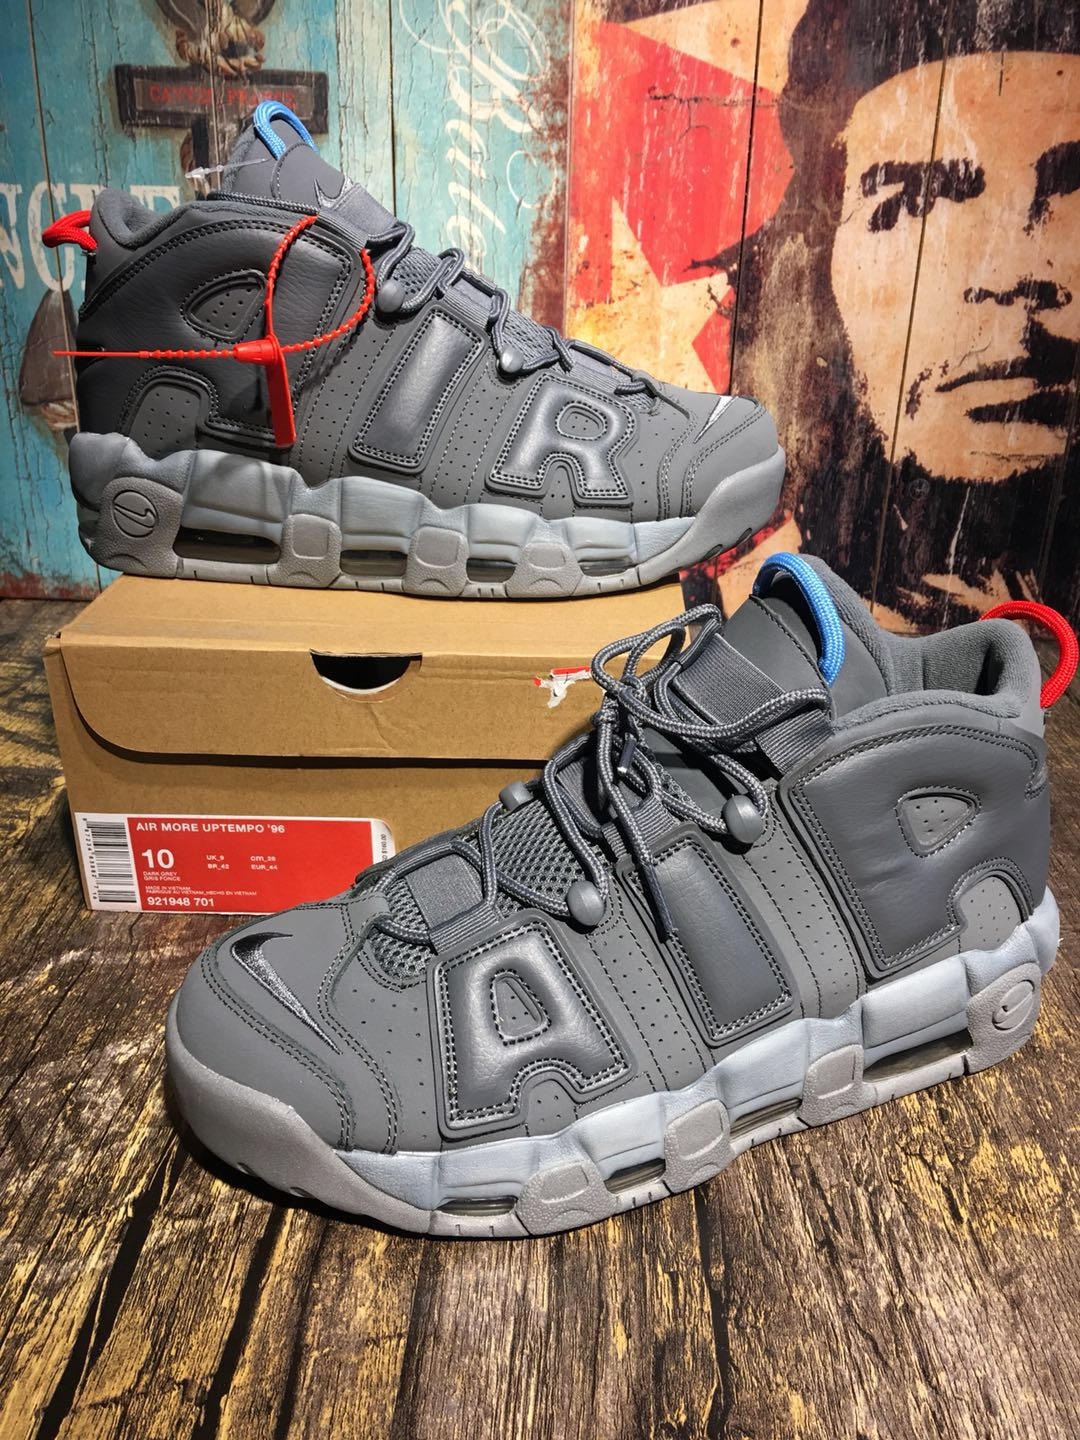 Alexander-John Nike Air Uptempo Grey Shoes